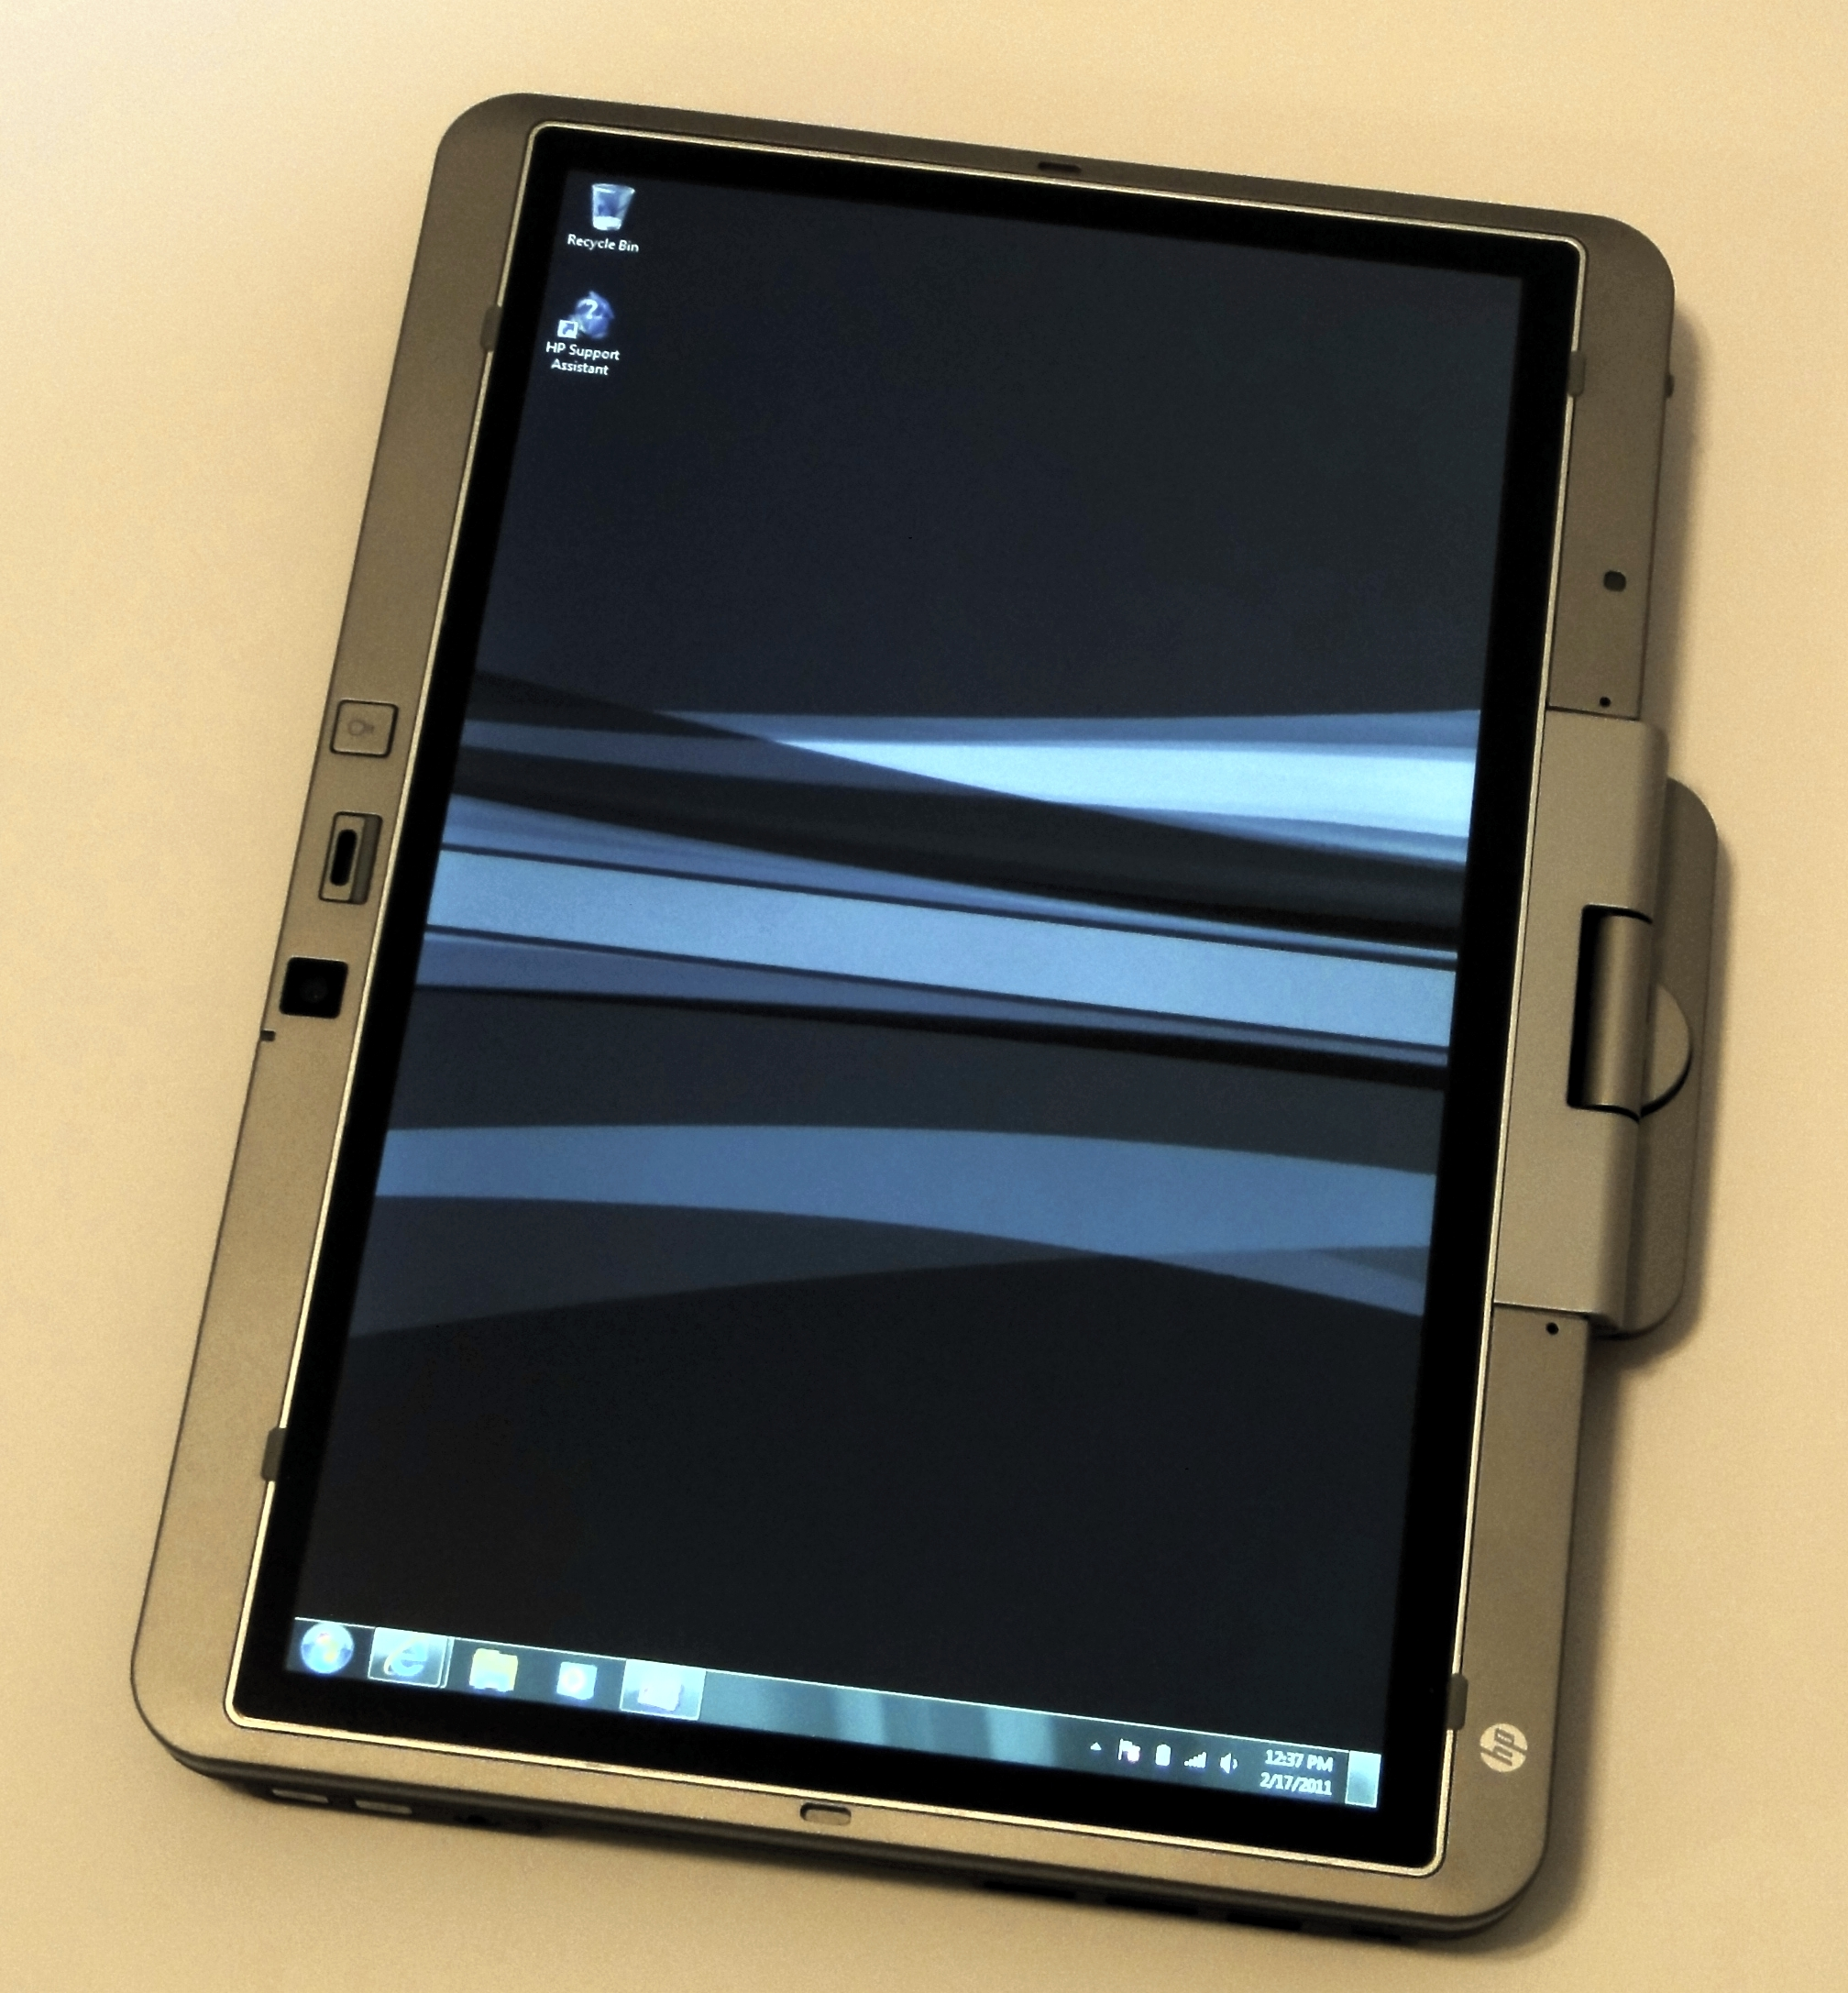 EliteBook Tablet mode